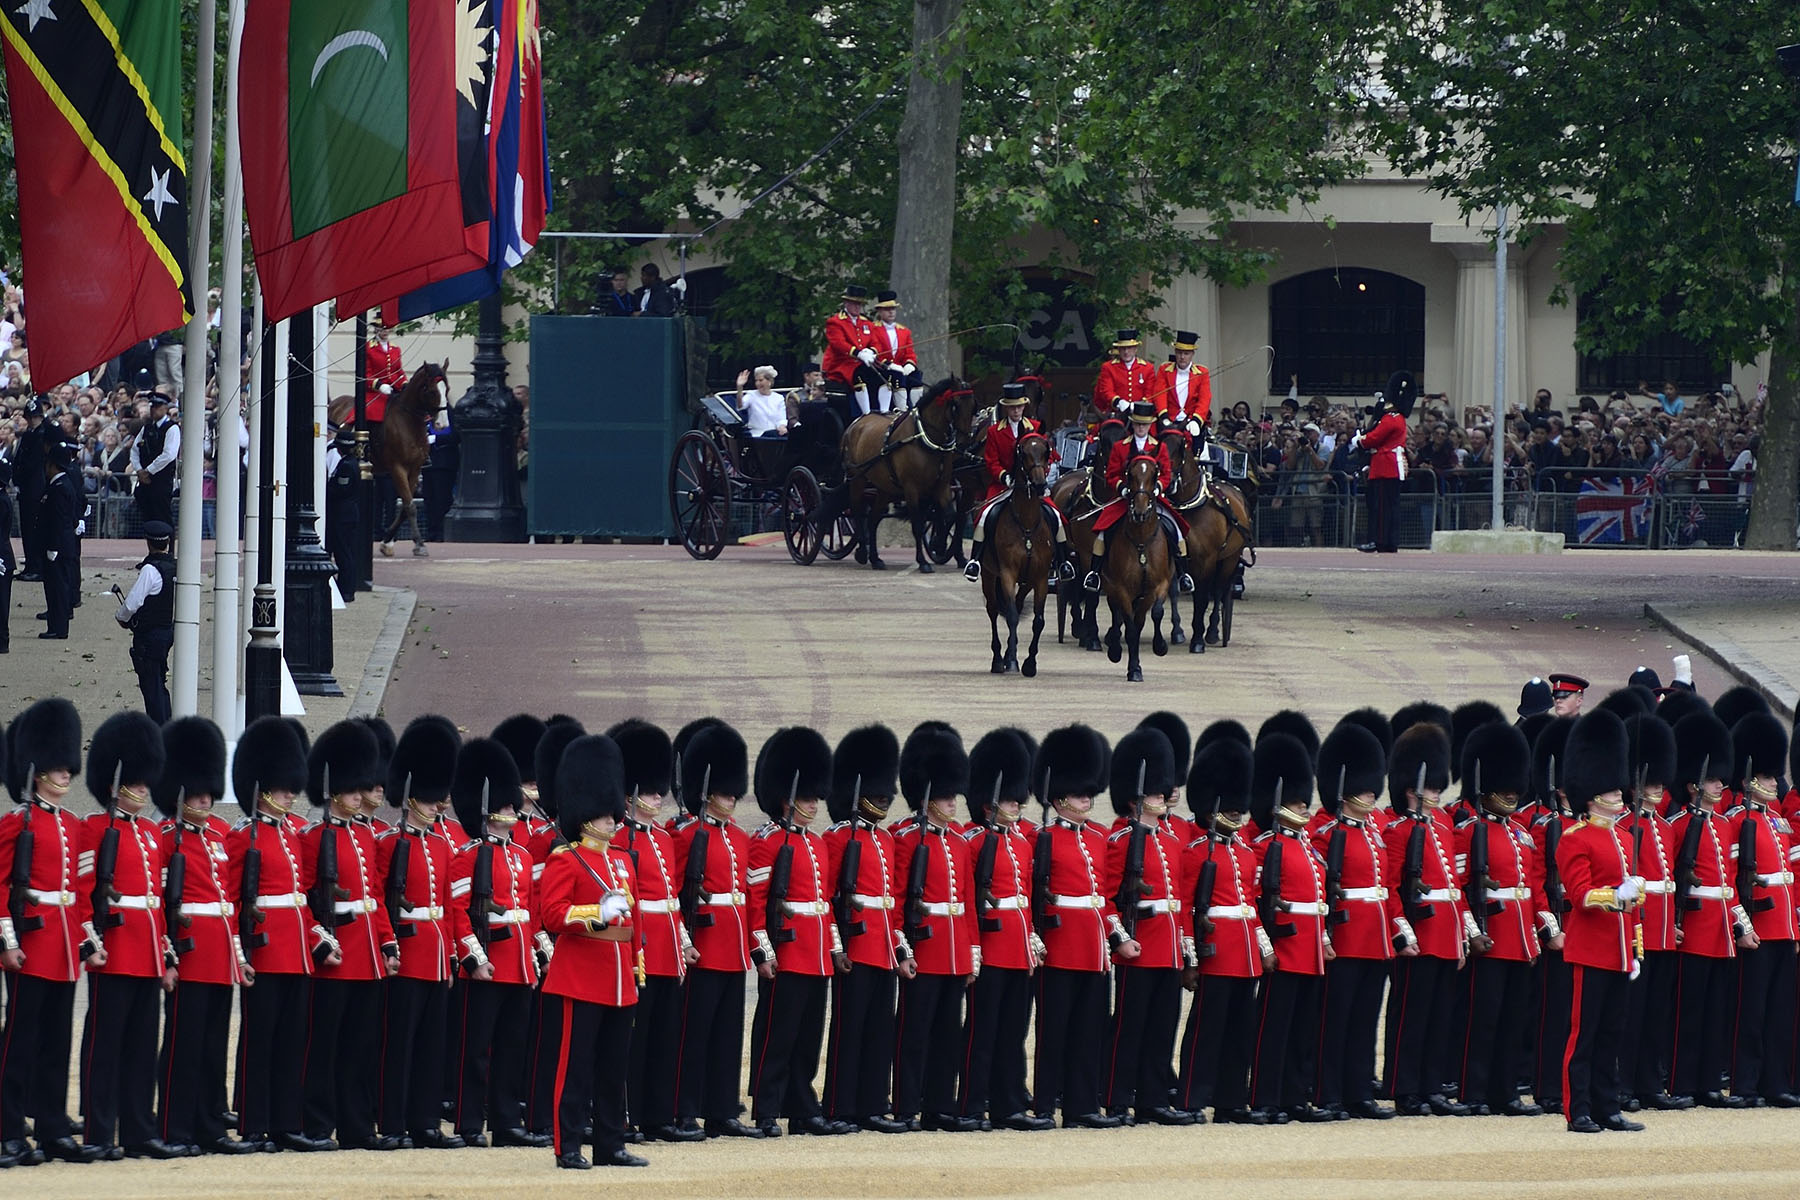 The Queen's Birthday Parade is held in June of each year to mark the Sovereign's birthday.